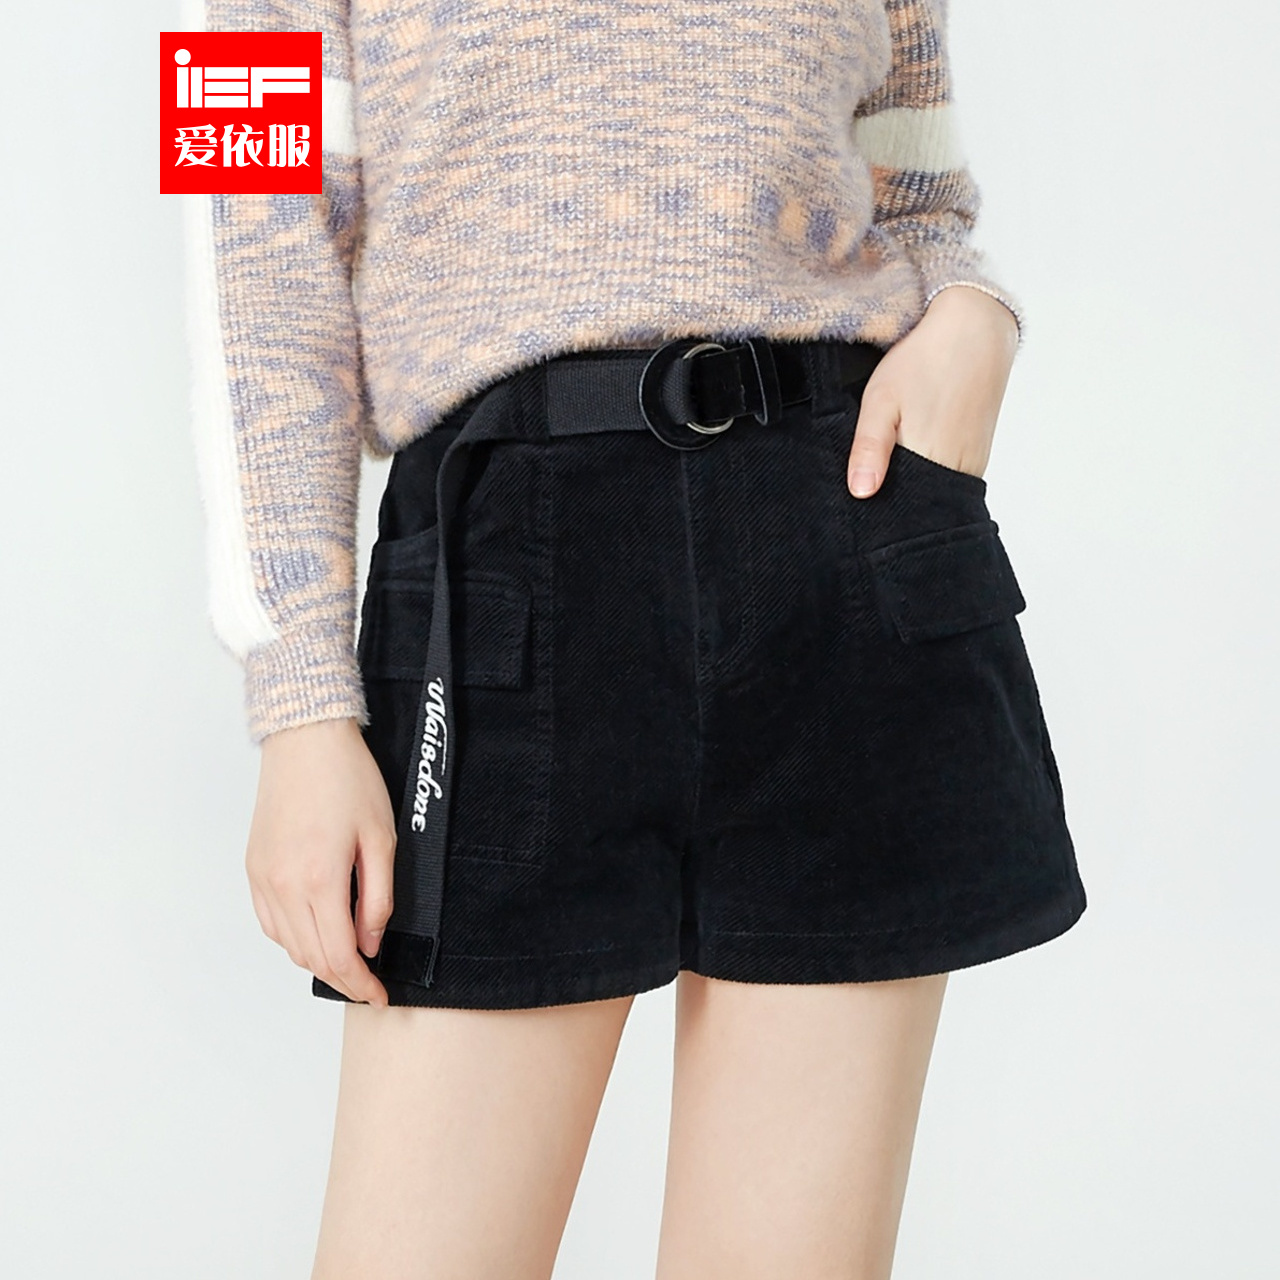 IEF / aiyifu corduroy shorts women's new Korean fashion high waist loose casual pants in autumn and winter 2019